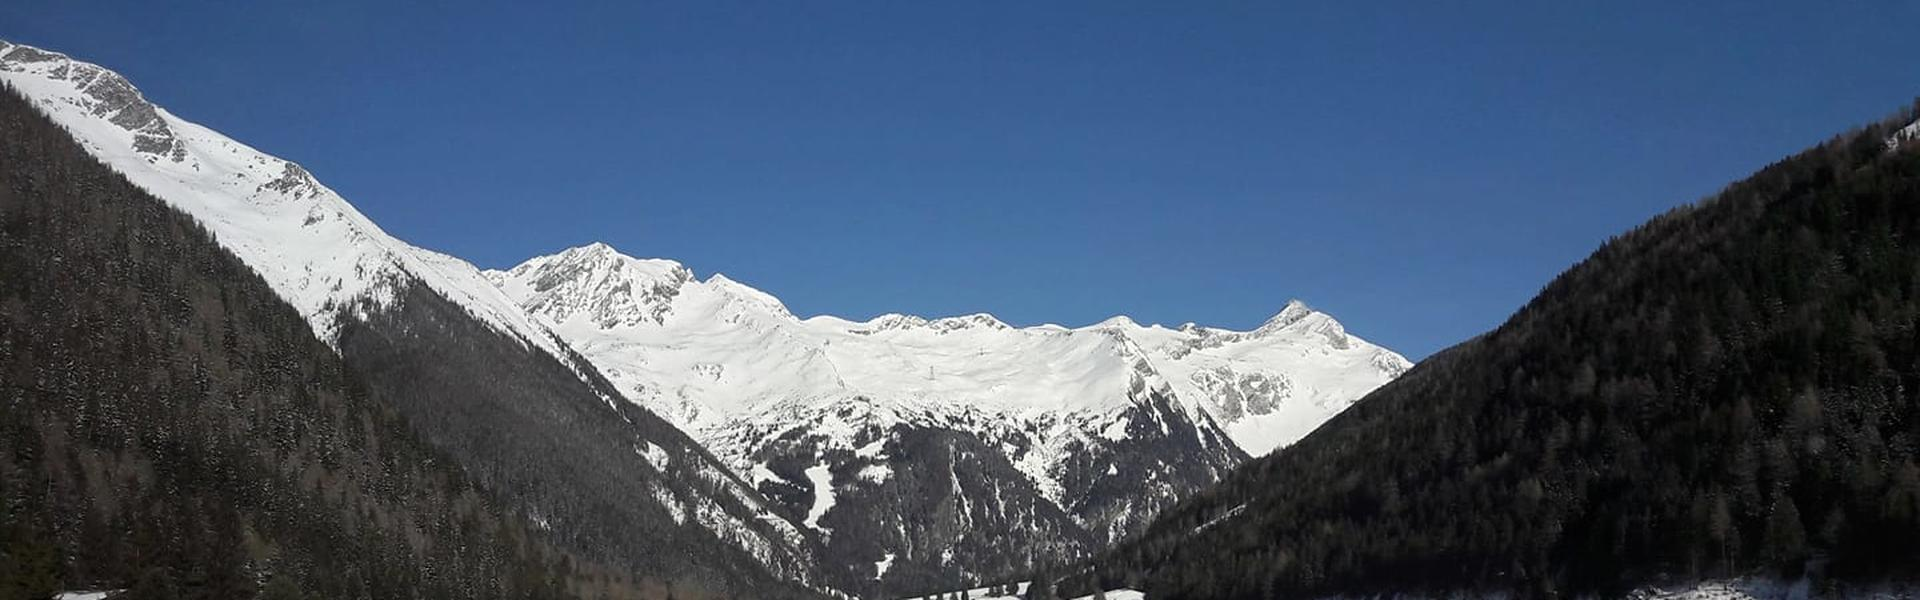 View from the valley to the Ankogel ski area